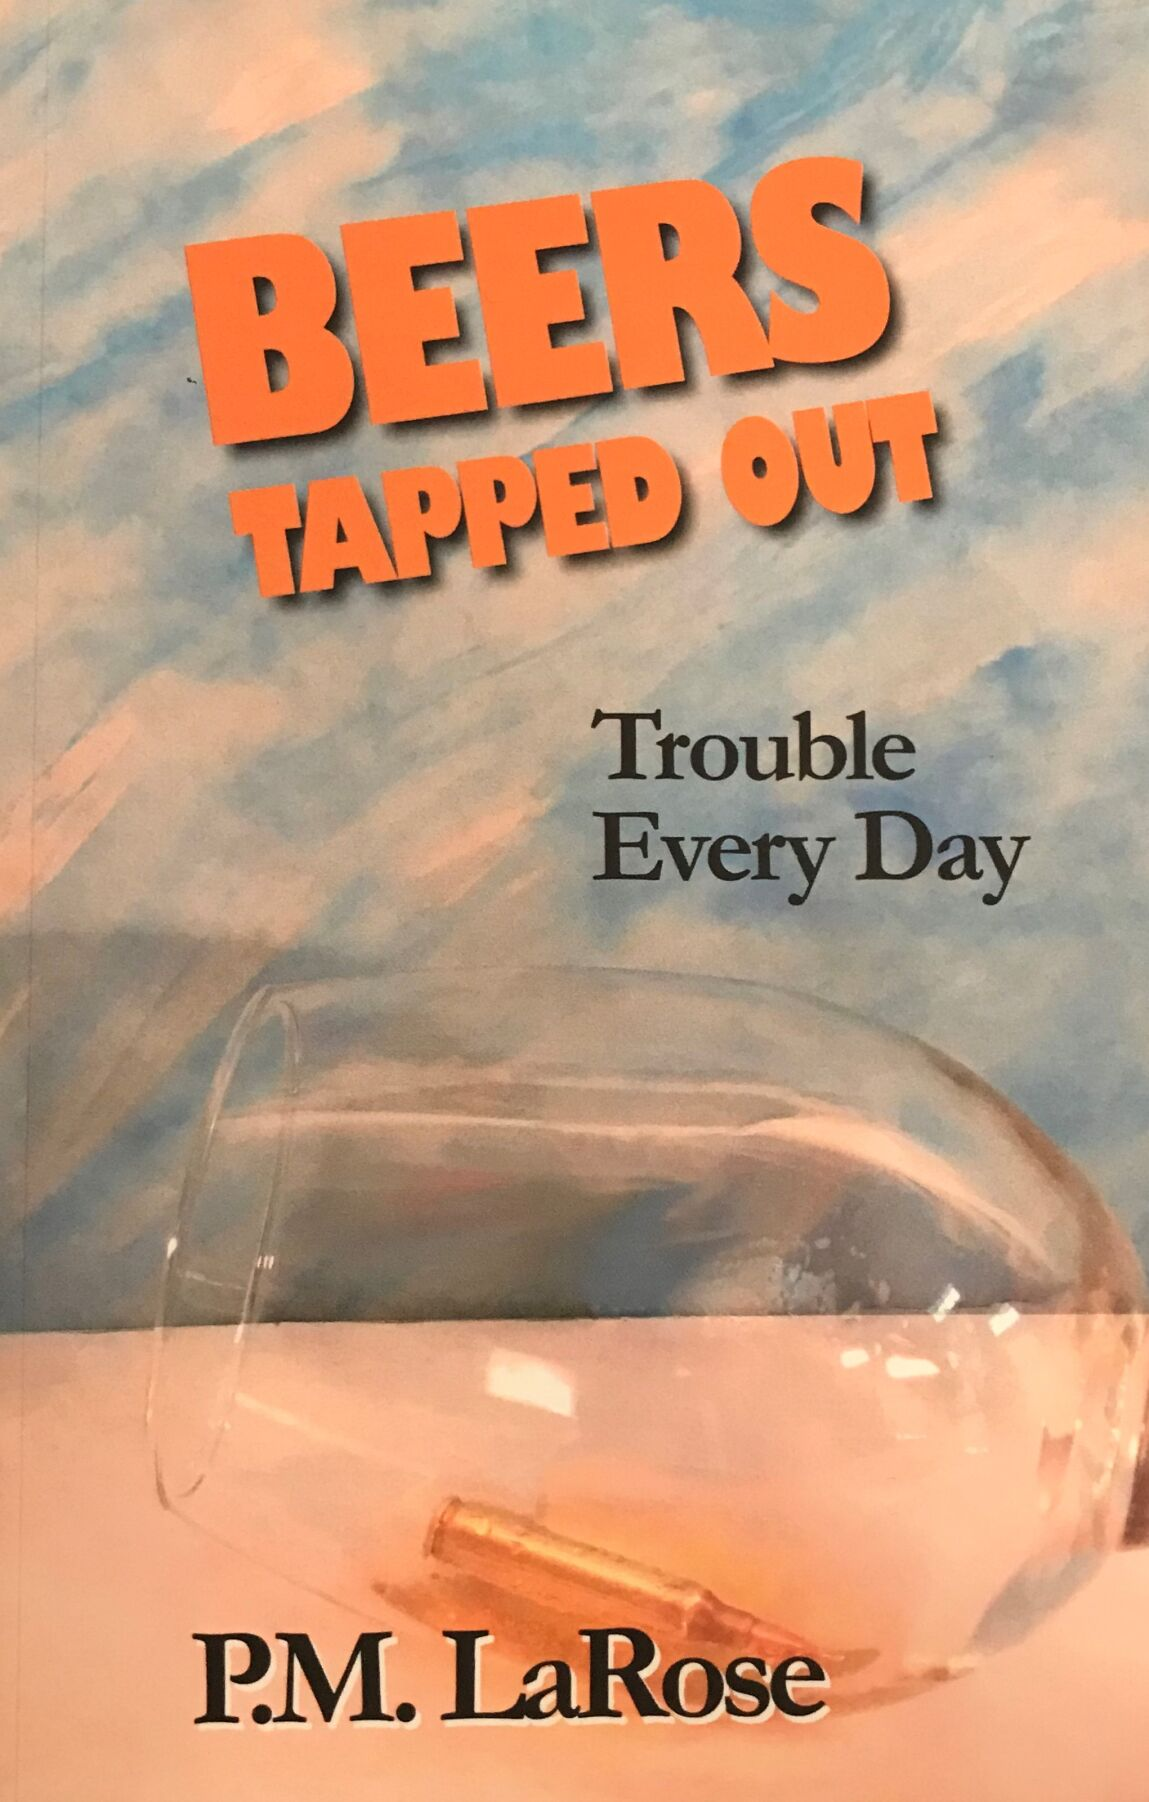 Beers Tapped Out.jpg